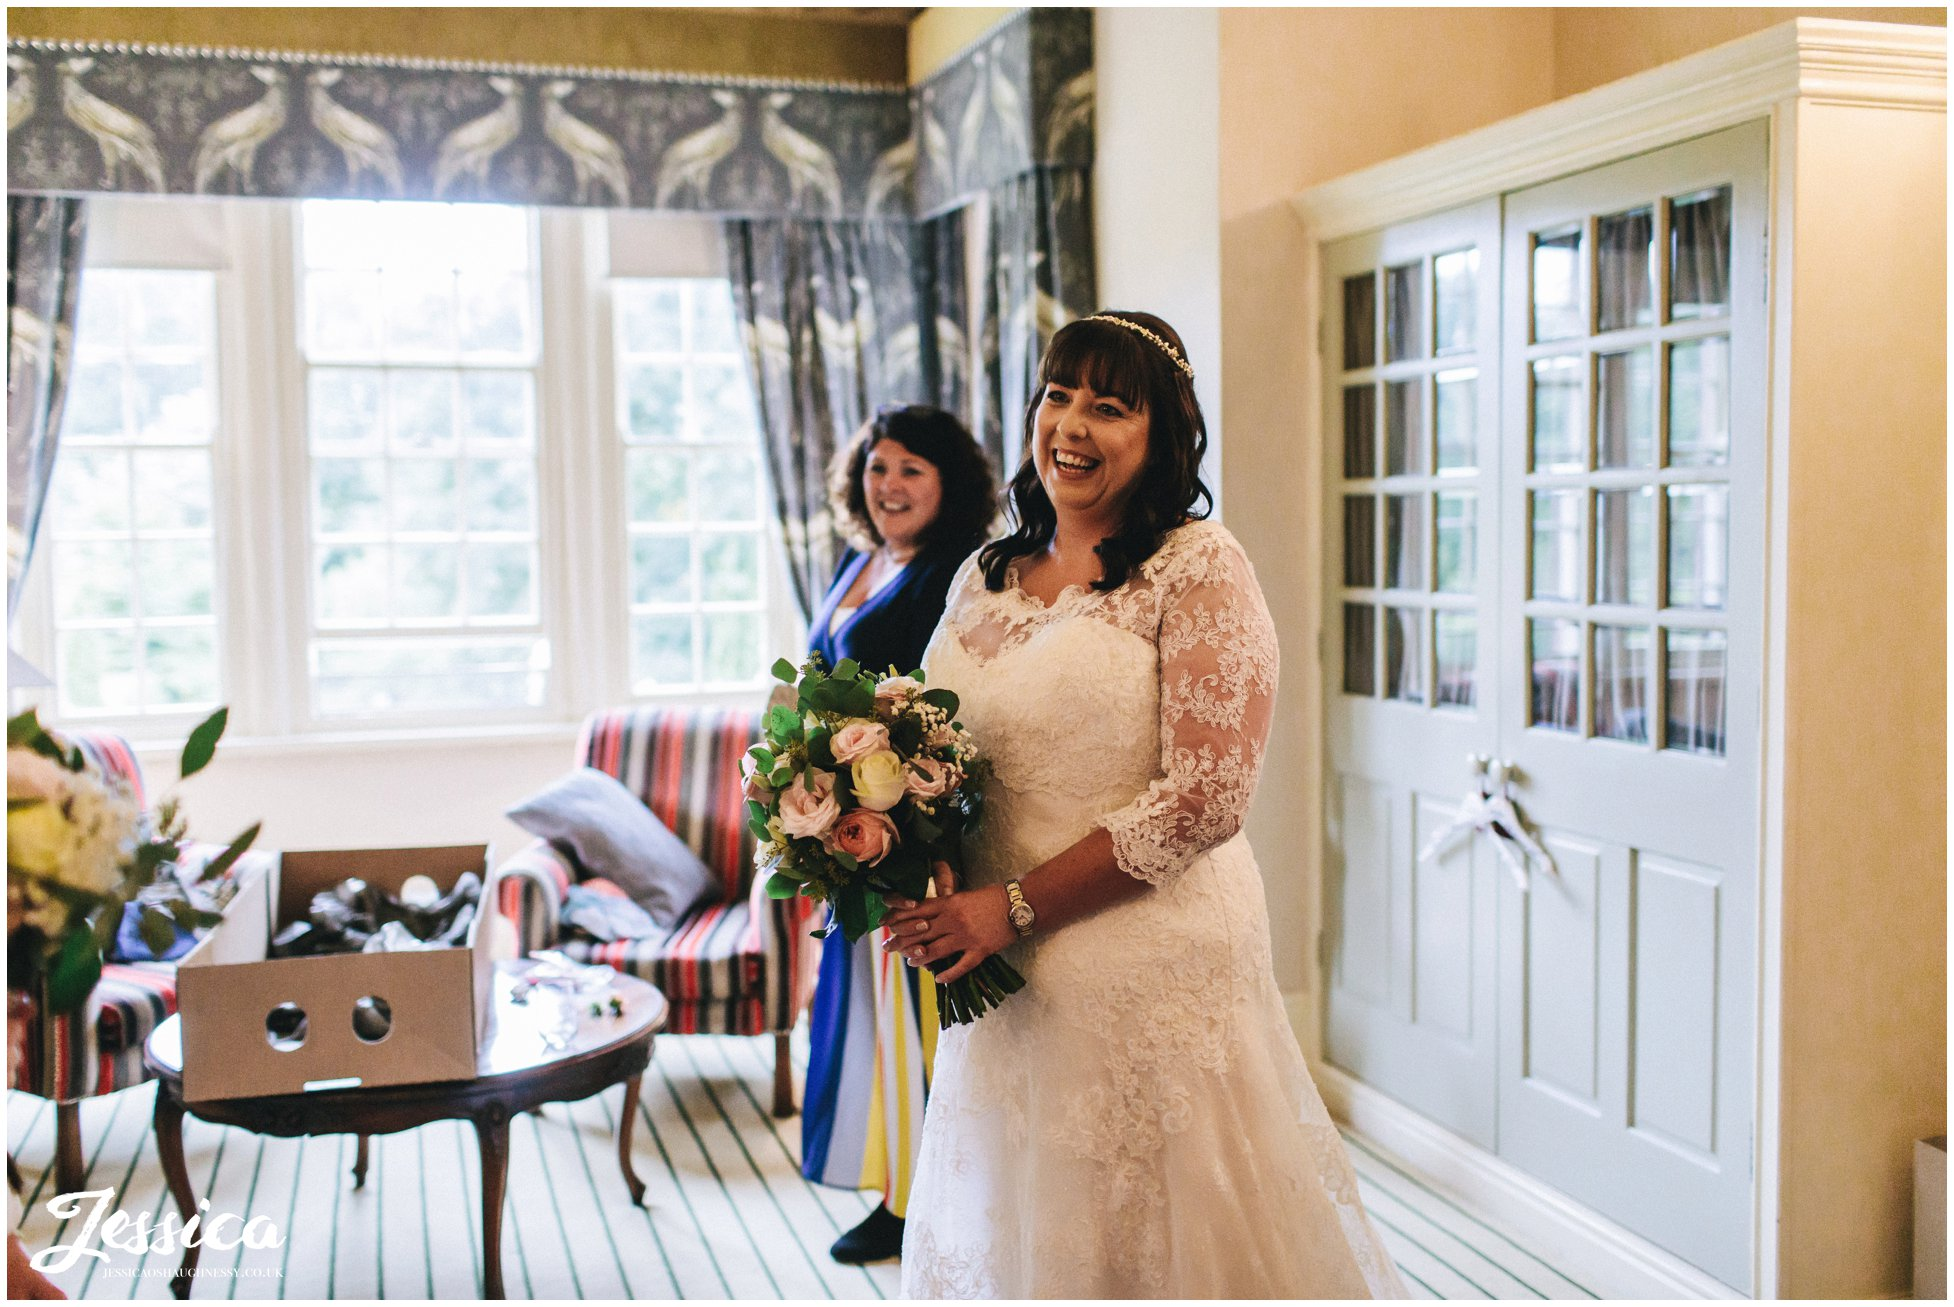 the bride smiles as she finished getting ready for the nunsmere hall wedding ceremony